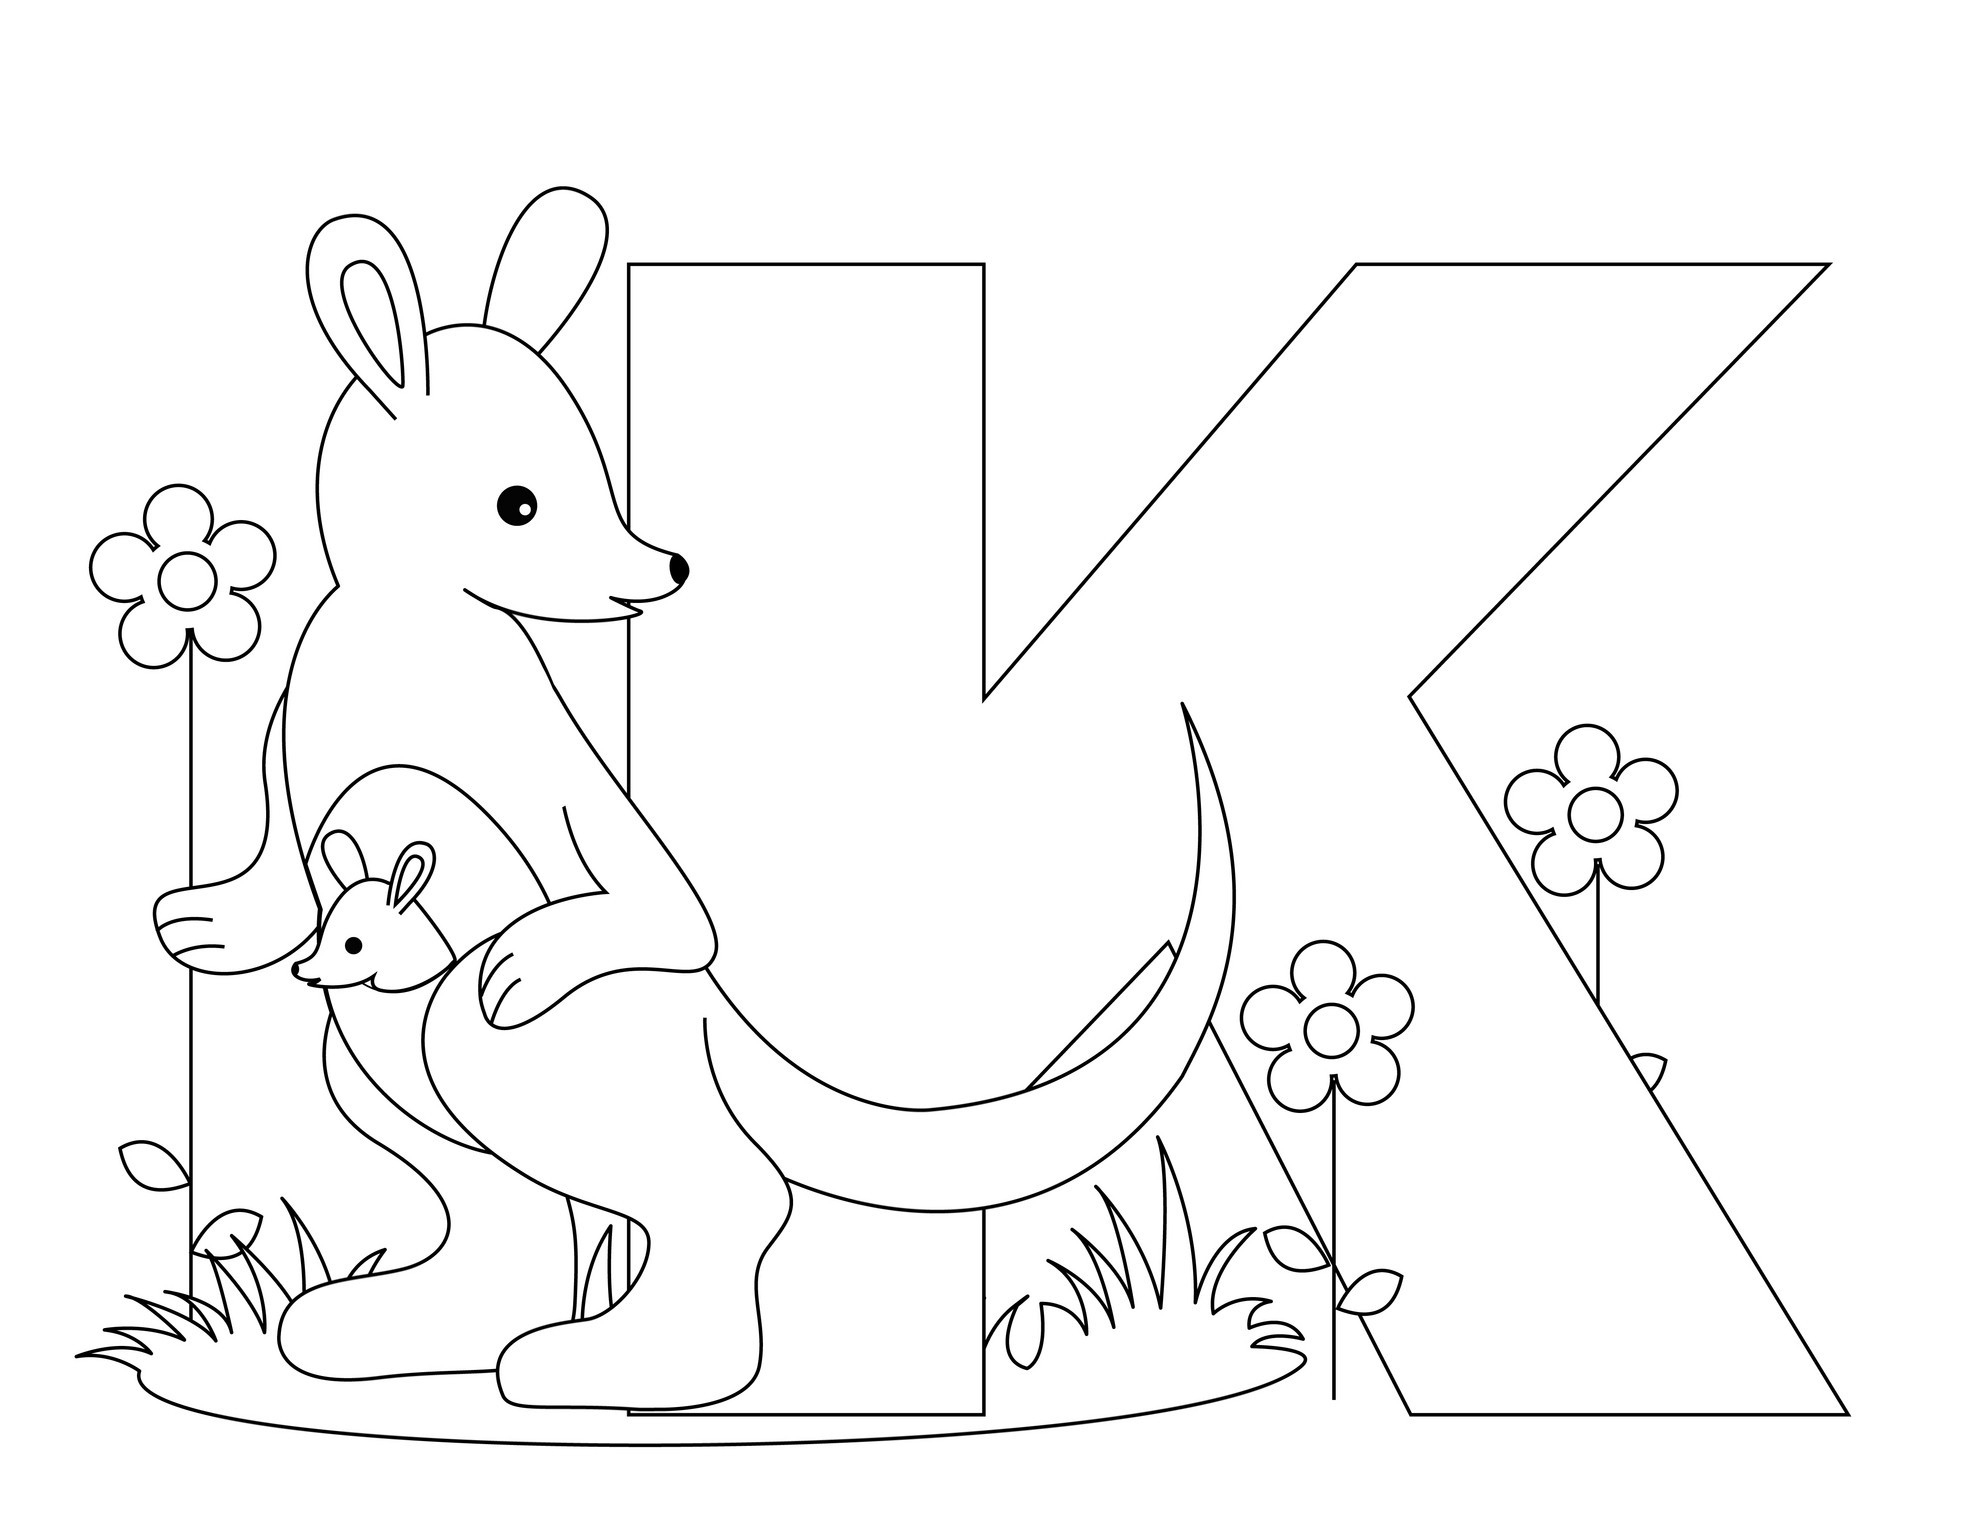 Alphabet Coloring Pages Preschool – With Kindergarten Also Childrens - Free Printable Alphabet Letters Coloring Pages